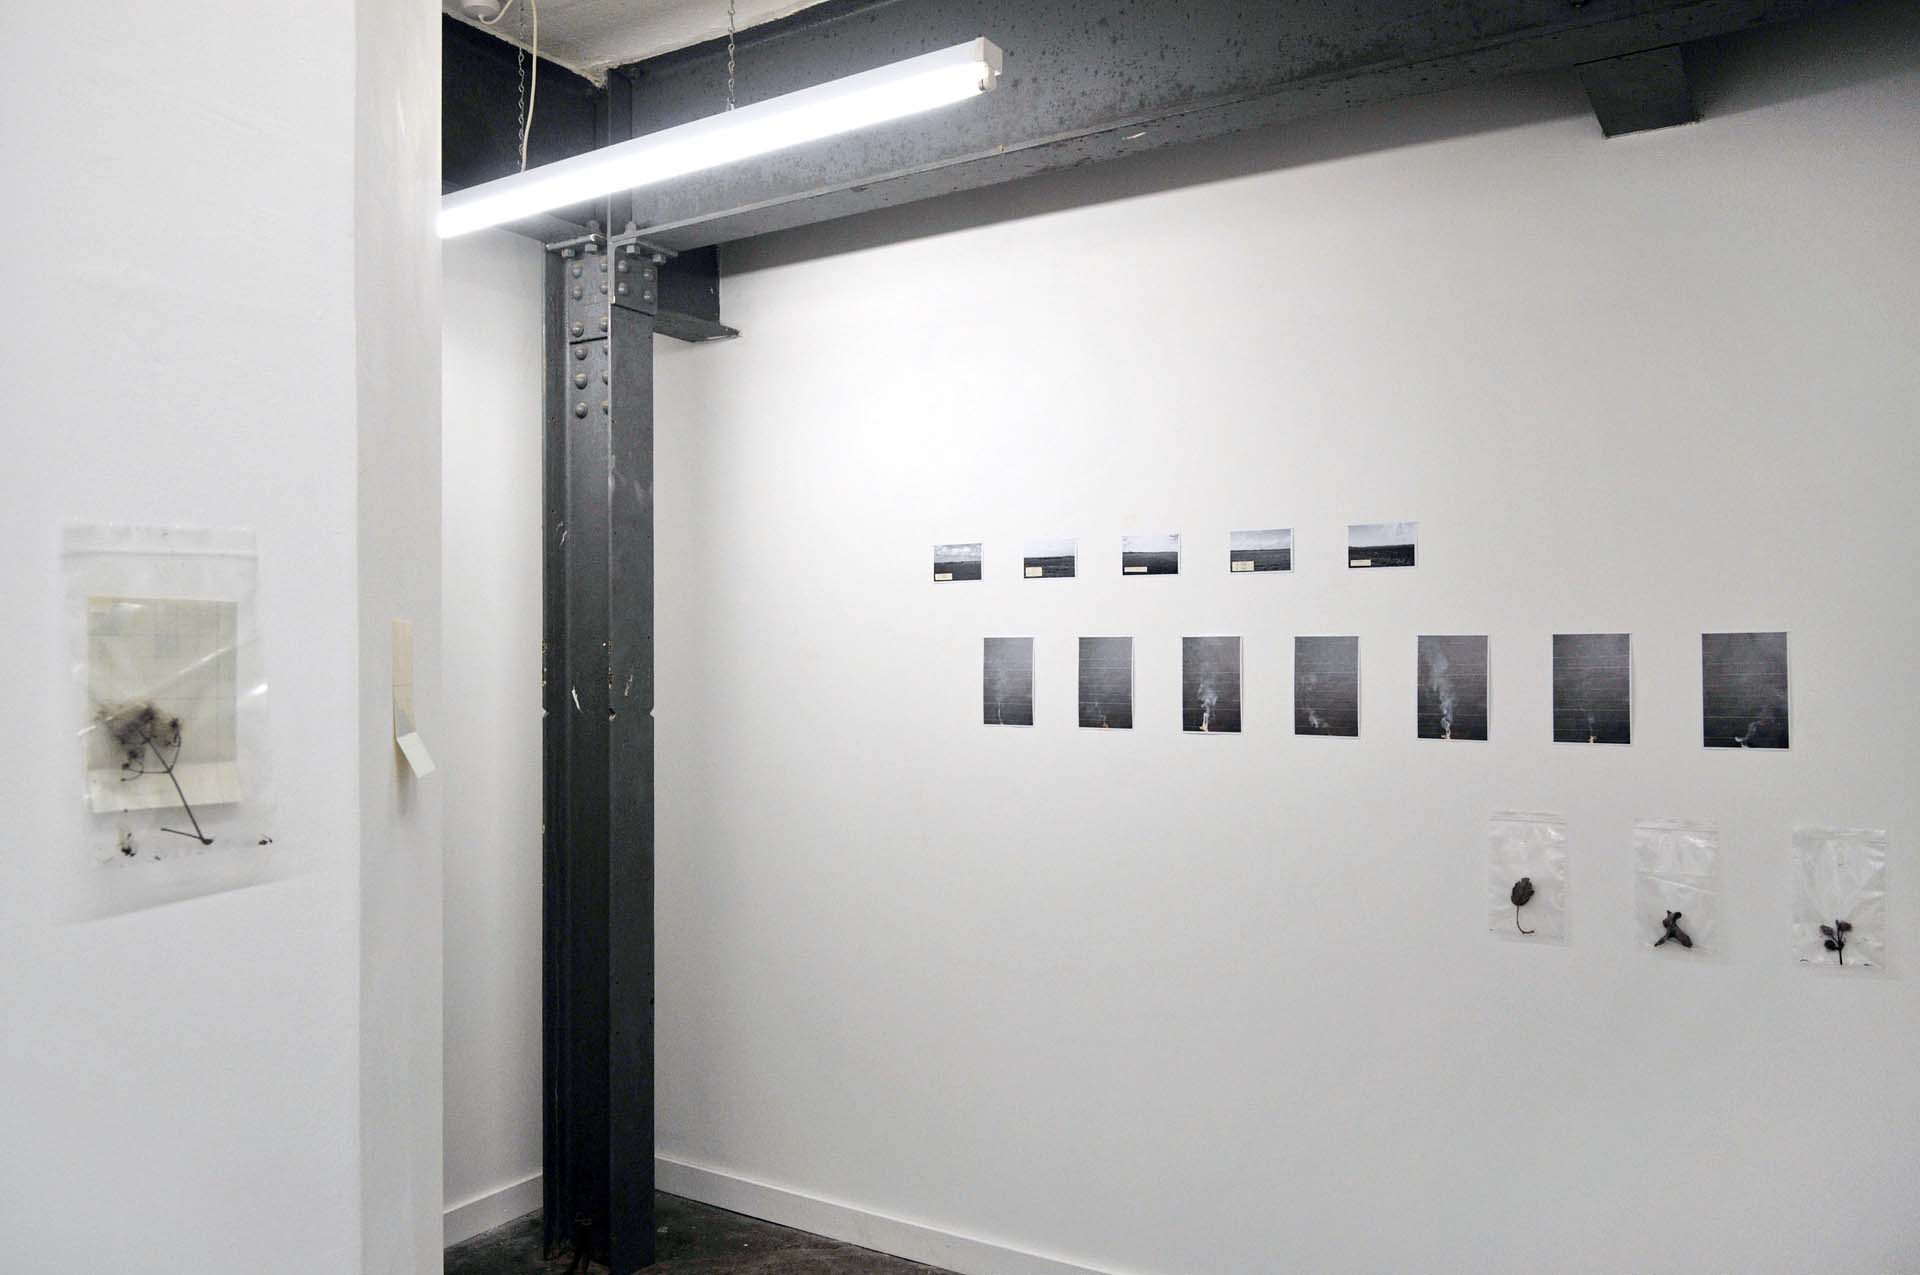 LUP Thanet Crate Space 6